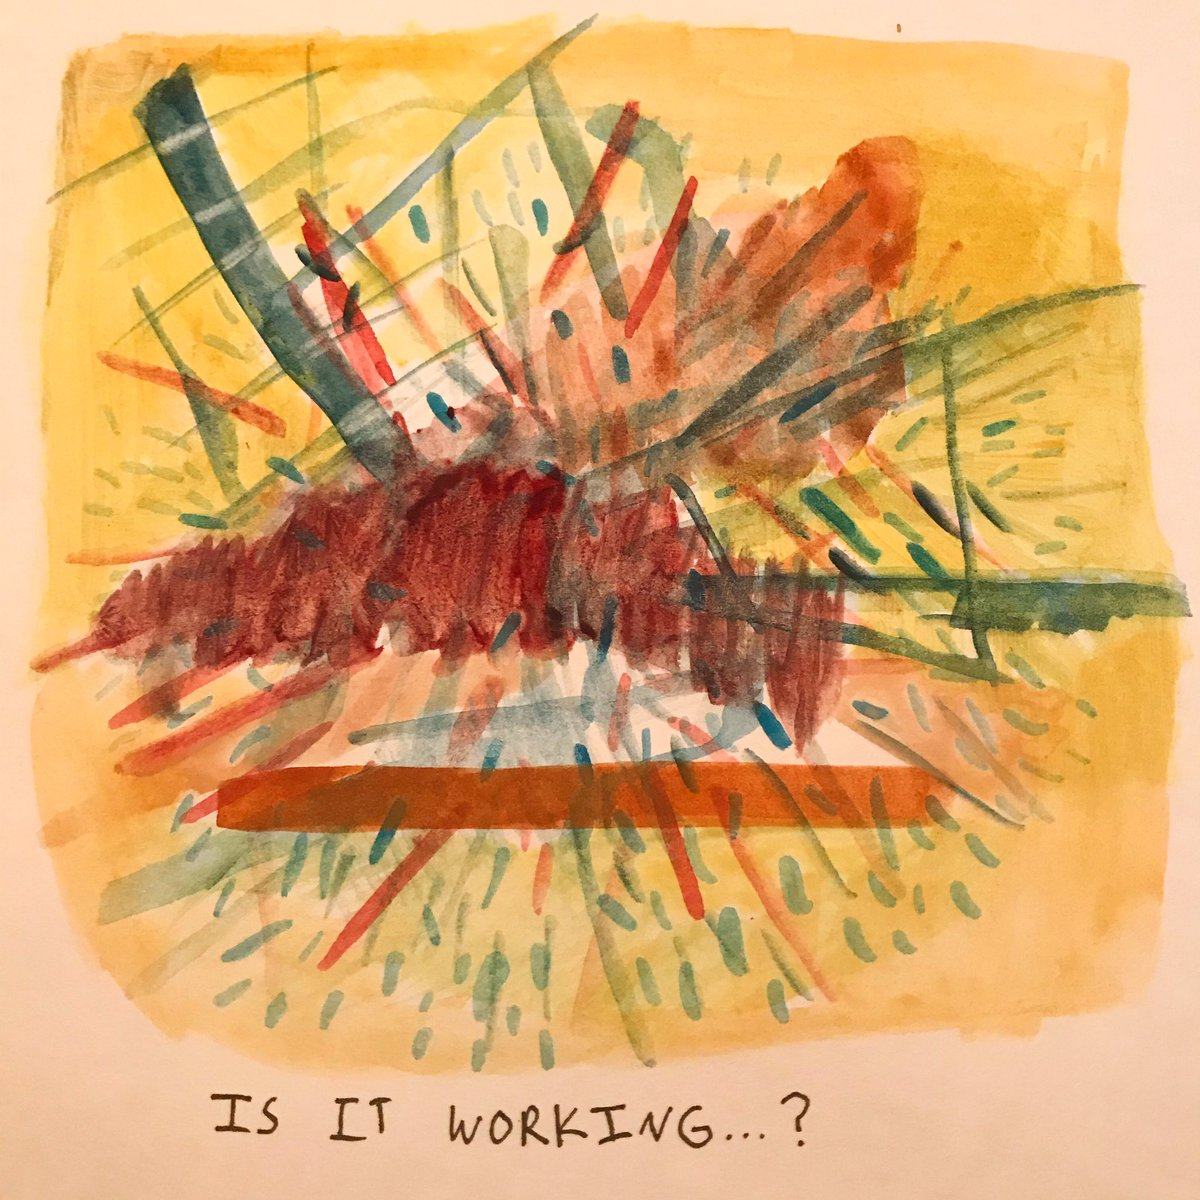 Is it... #watercolor #watercolorpainting #abstractartwork #abstractpainting #contemporaryartist #contemporarypainting #wordart #juliaguzziopic.twitter.com/6R6zRpUOJR